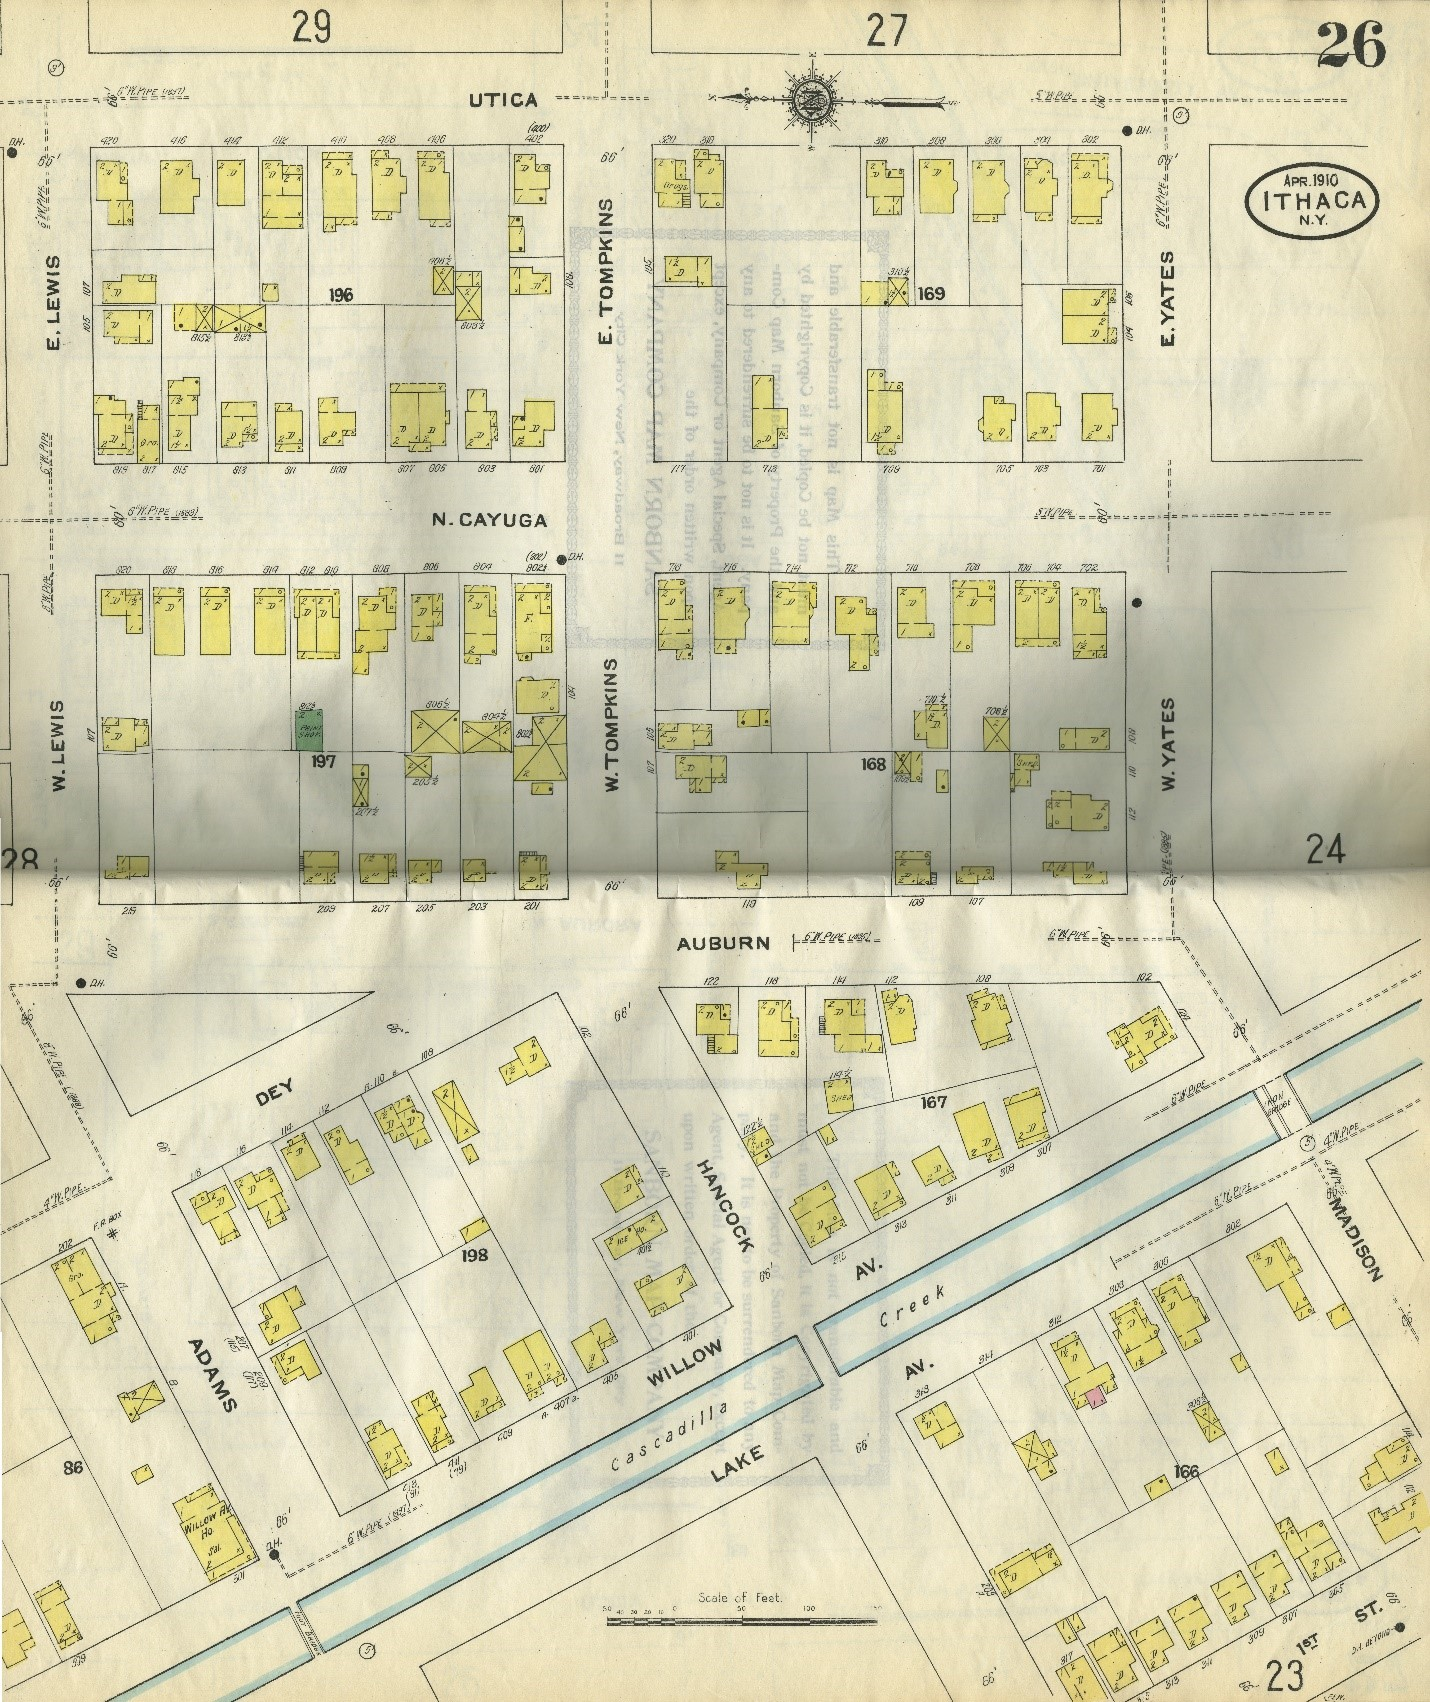 "Sanborn map of Ithaca from 1910. The yellow designates wood siding, and the letter D represents dwelling. The only building not colored yellow is labeled ""print shop."" The color green designates a hazardous risk; in this case probably because of the inks used in the printing process."